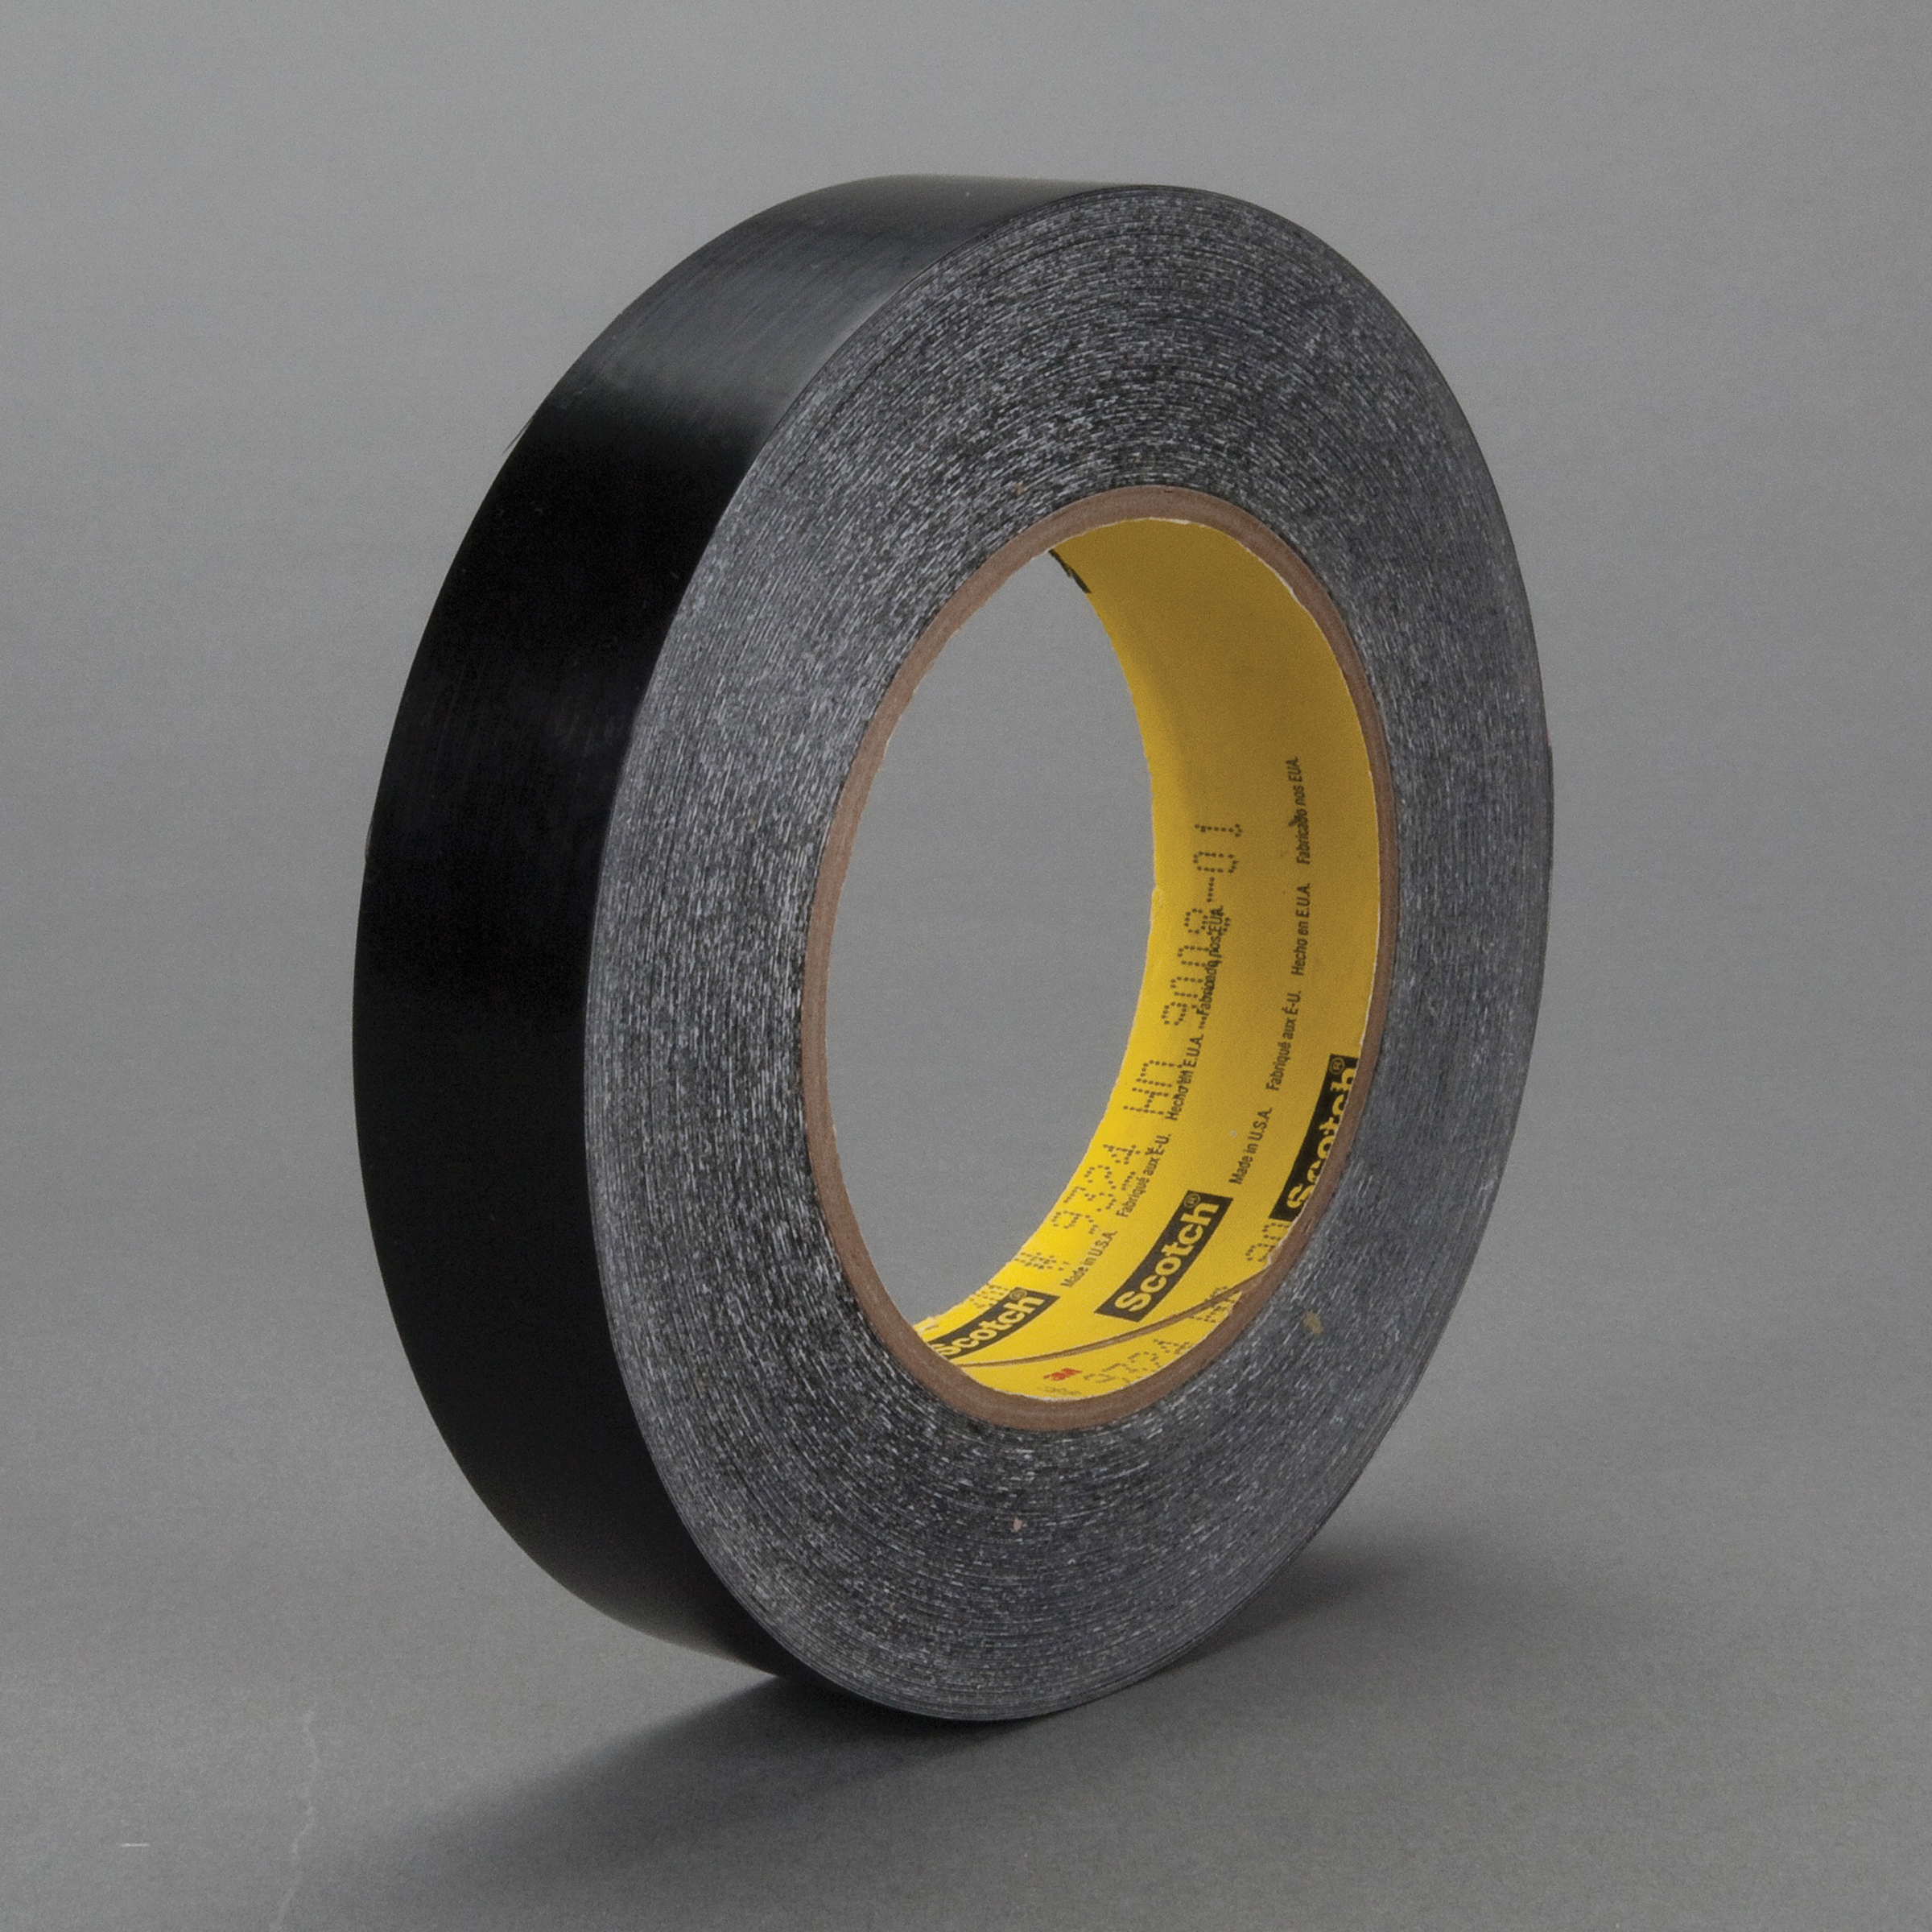 3M™ 021200-38826 High Tack Squeak Reduction Tape, 36 yd L x 1 in W, 6.5 mil THK, Acrylic Adhesive, UHMW Polyethylene Film Backing, Black